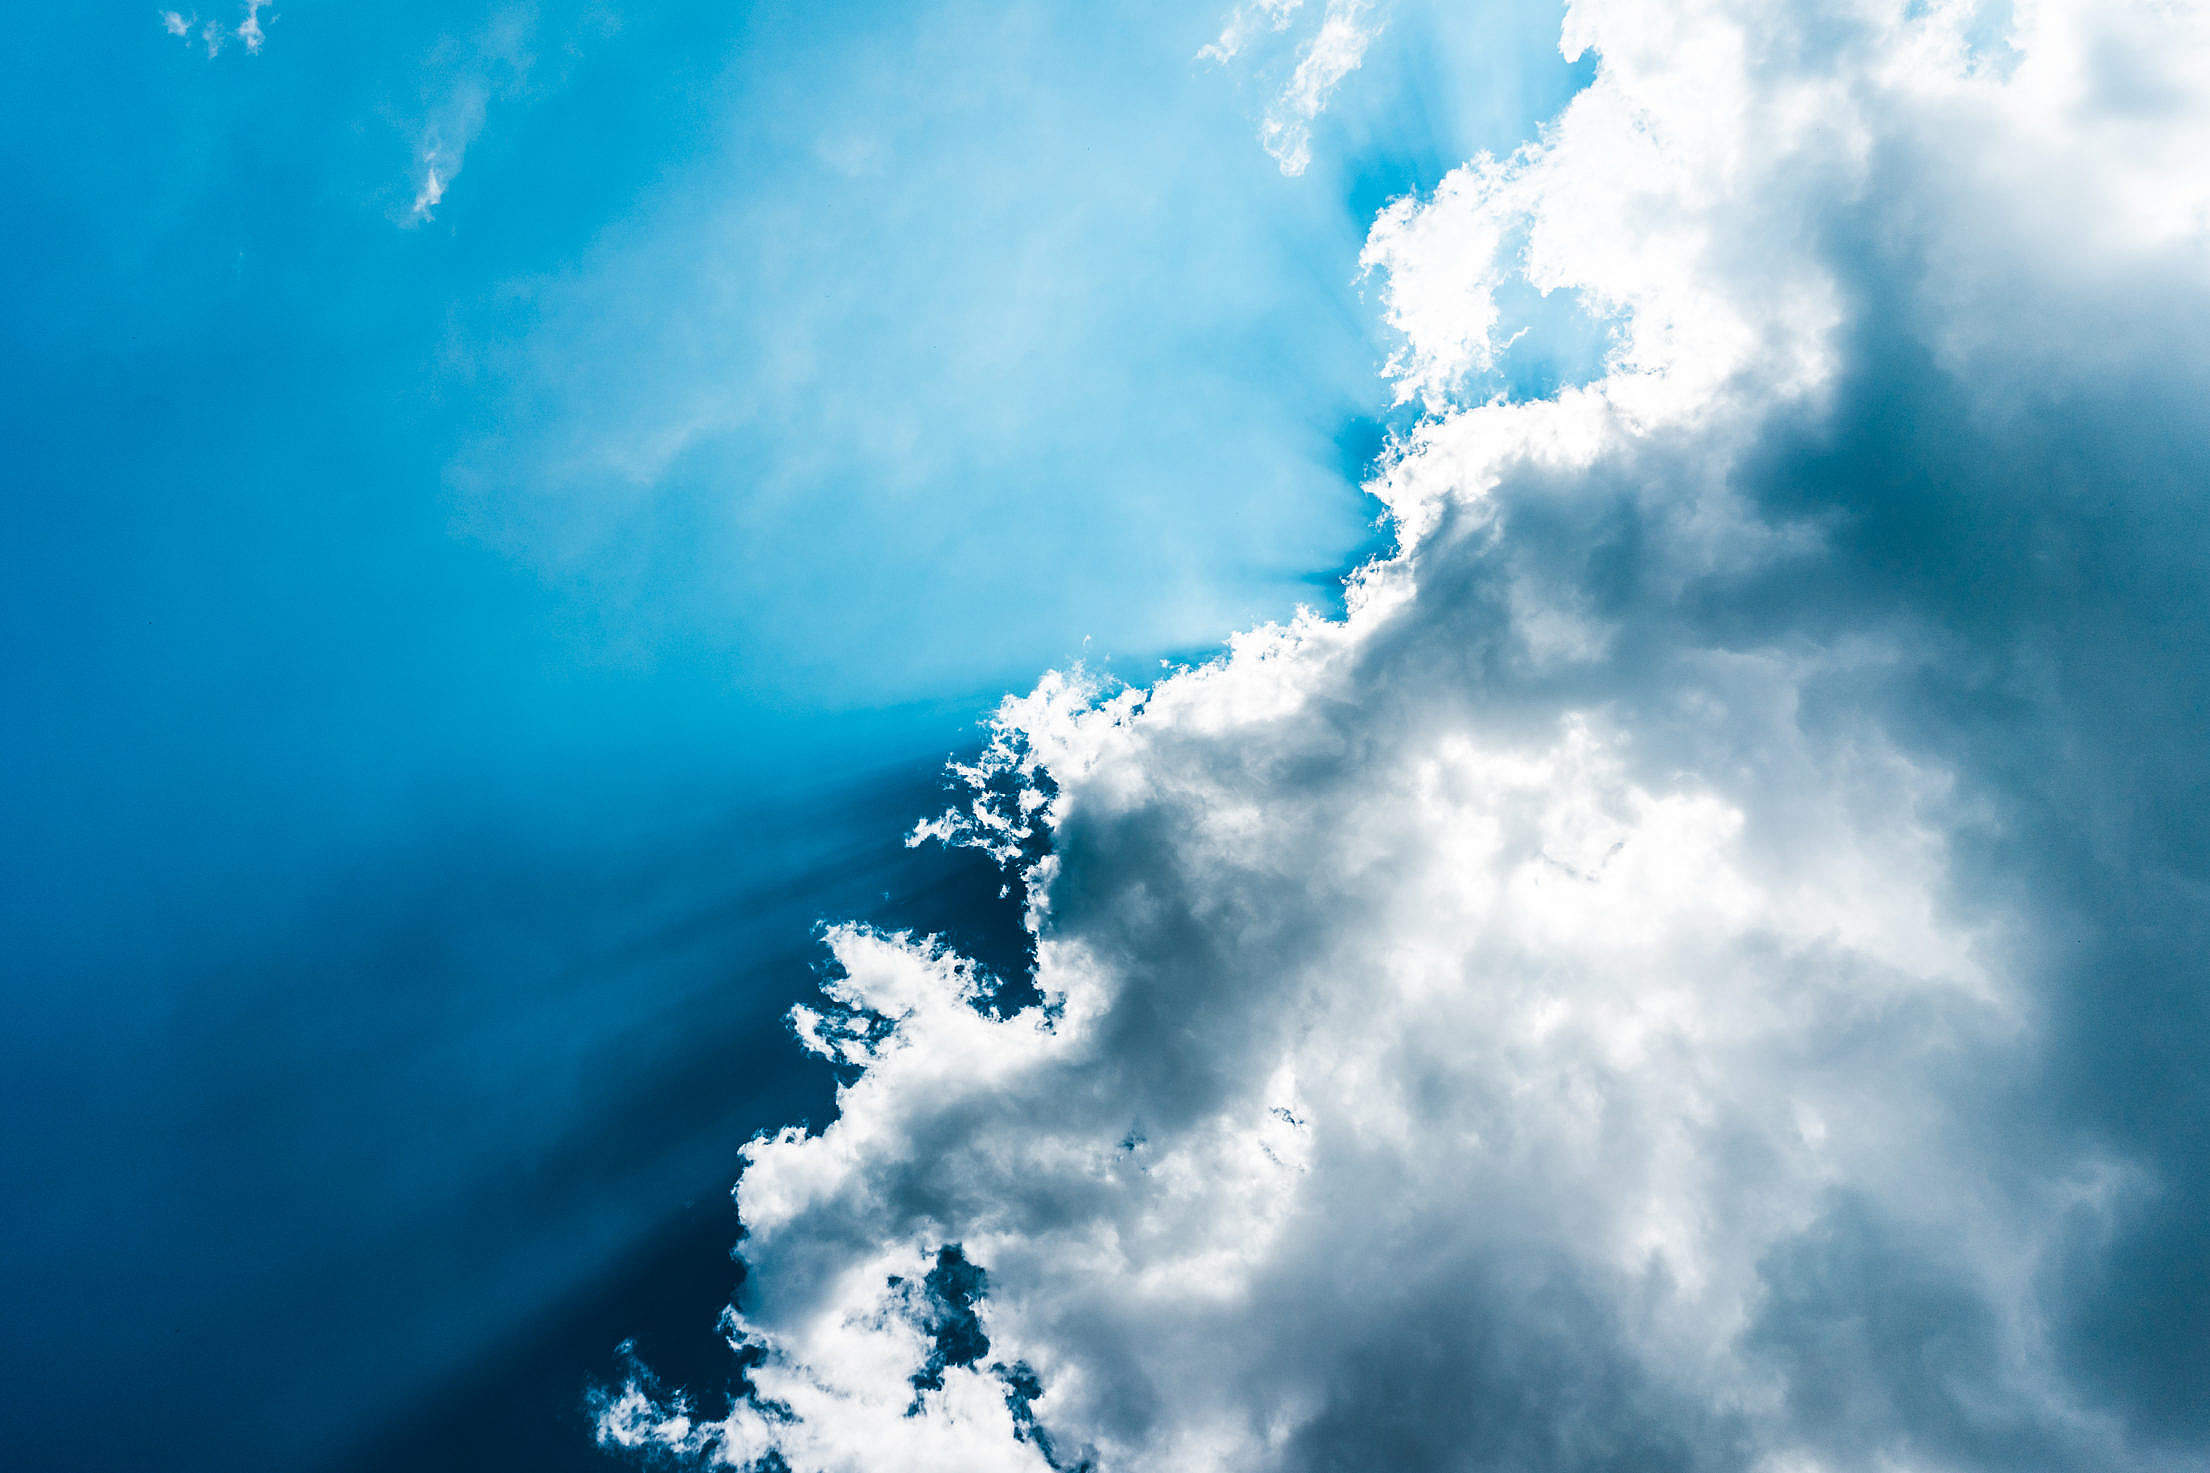 Sun Behind Clouds Free Stock Photo